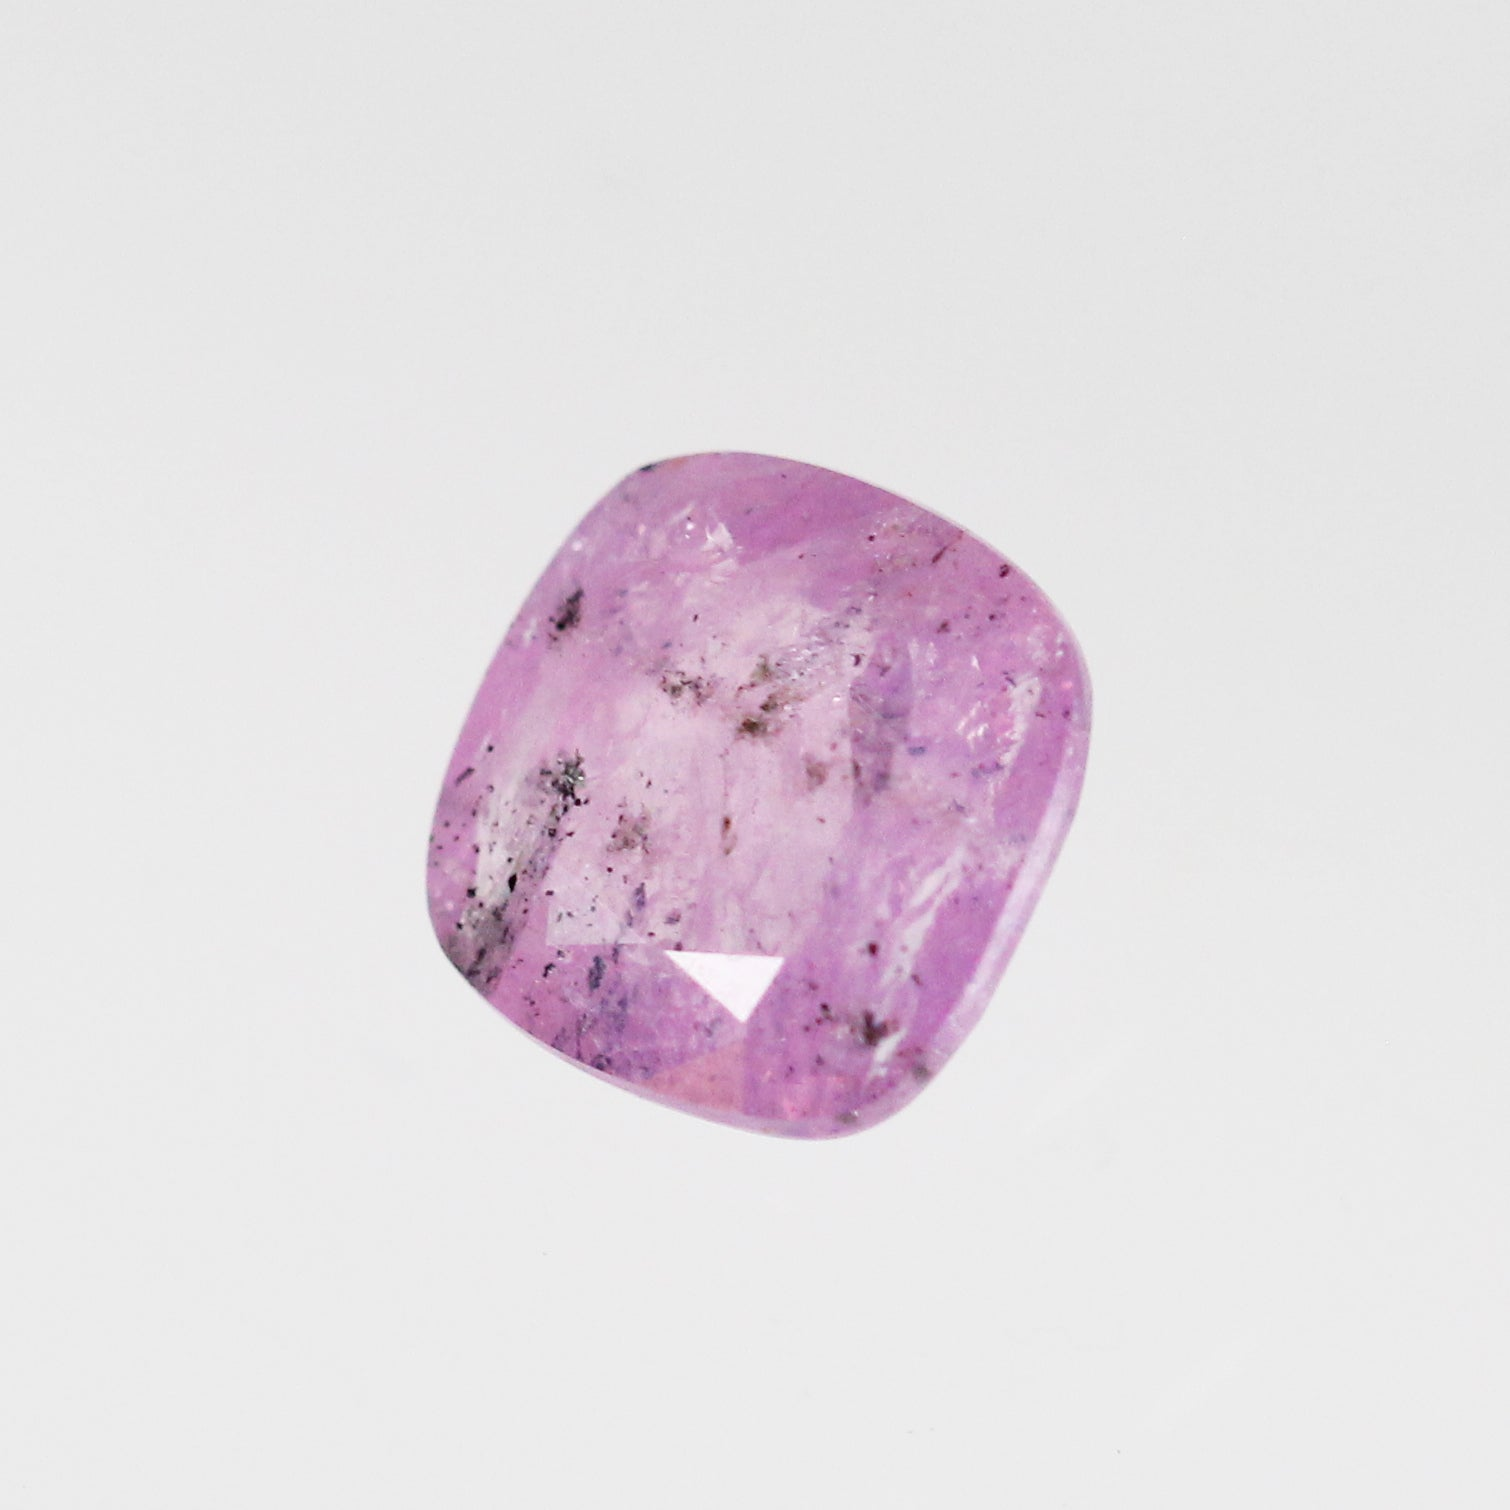 1.31 Carat Cushion Sapphire for Custom Work - Inventory Code CBSAP131 - Celestial Diamonds ® by Midwinter Co.